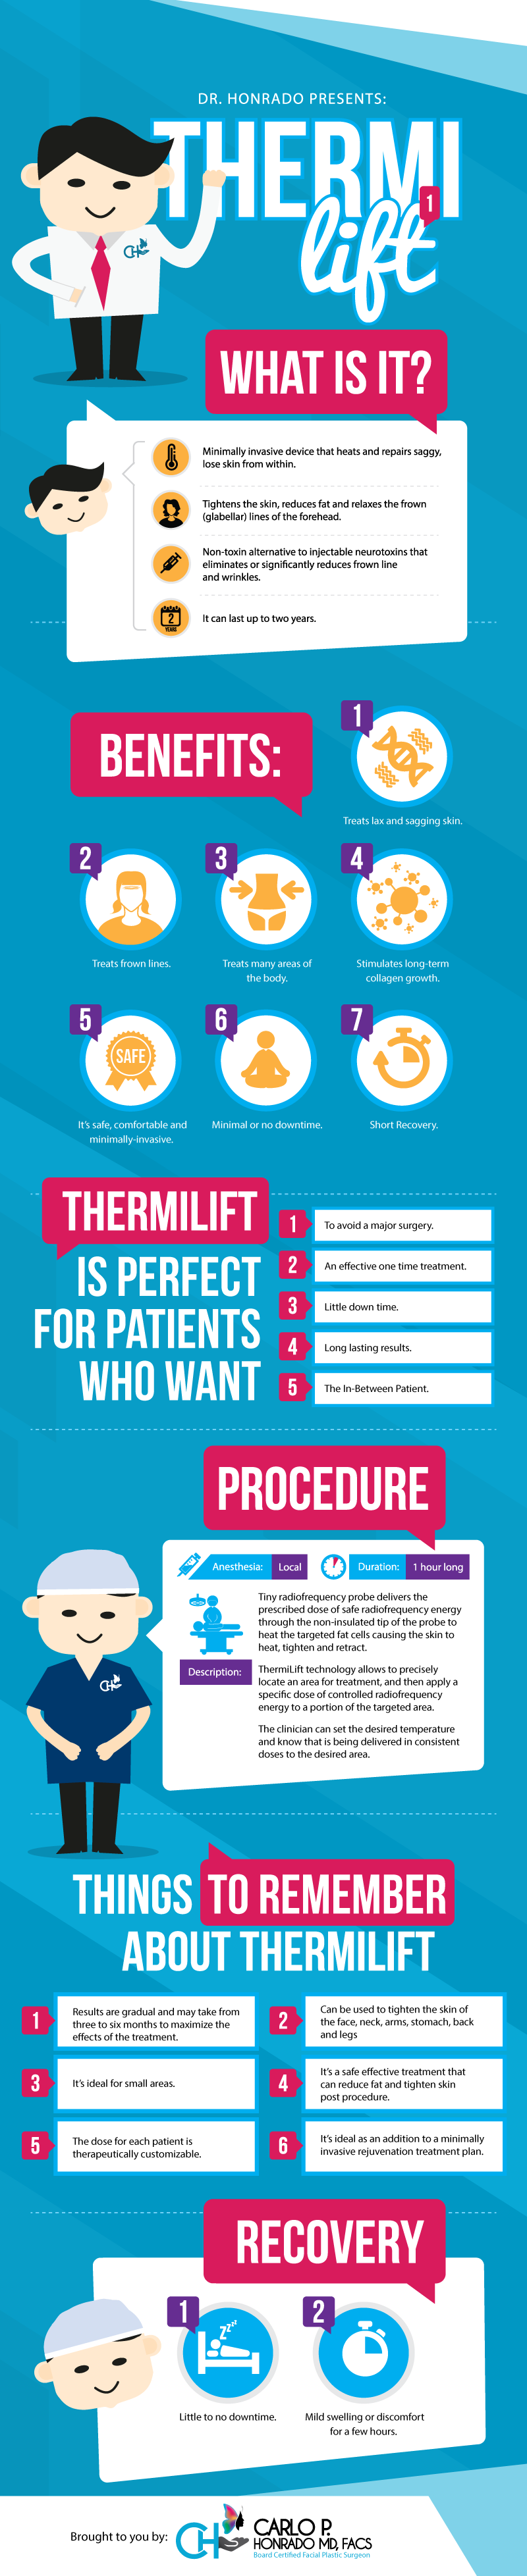 THERMIlift is a minimally invasive device that heats and repairs saggy, lose skin from within. Tightens the skin, reduces fat and relax the frown (glabellar) lines of the forehead.